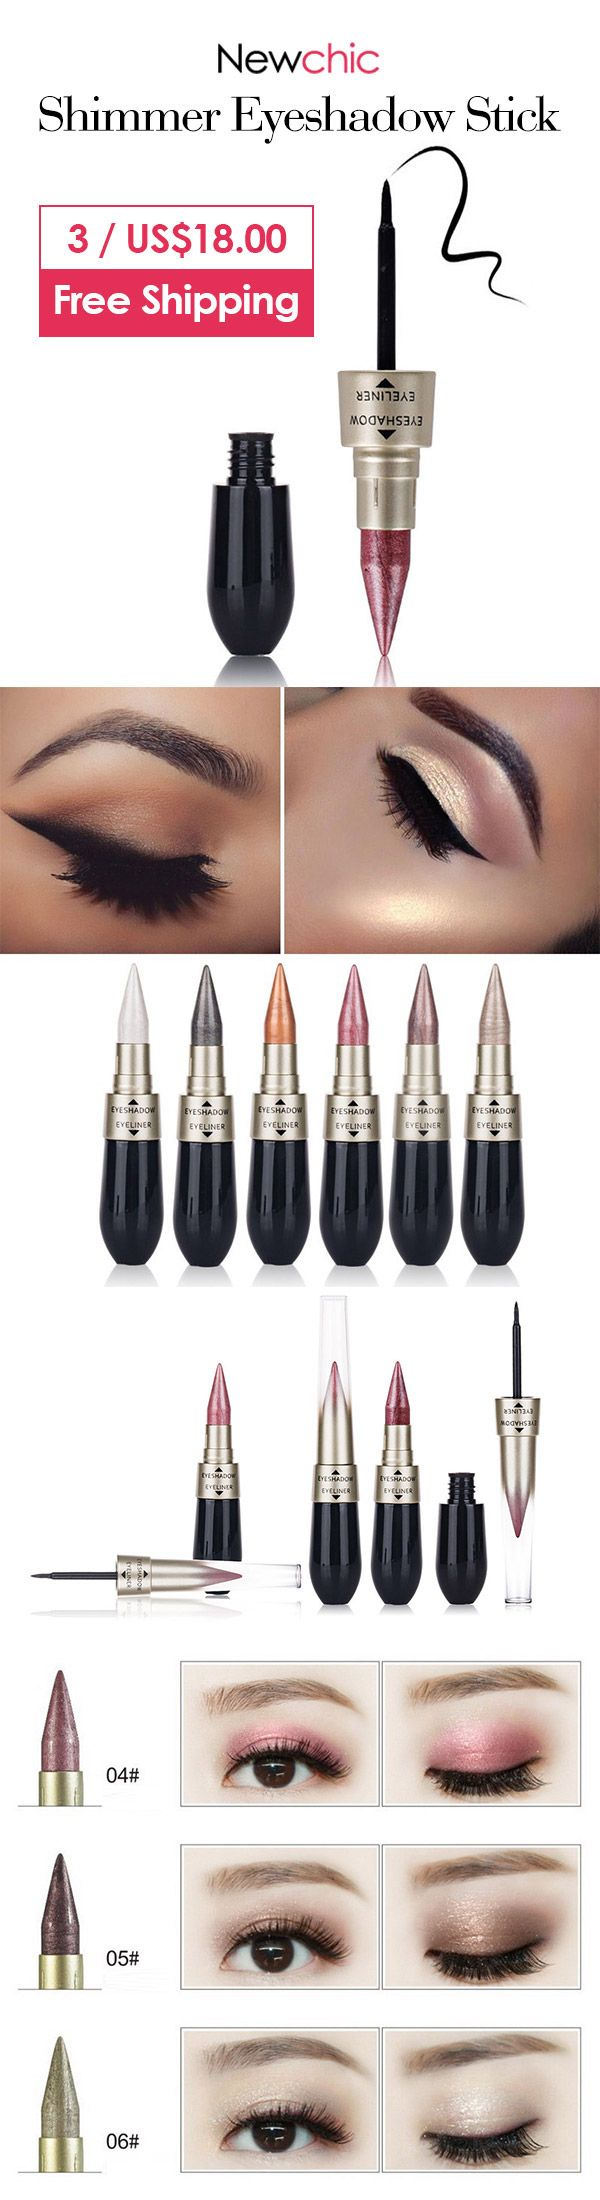 107 Best Makeup Skin Care Images On Pinterest Beauty Inez Color Contour Plus Loose Eyeshadow Powder Sparkling Silver Hengfang Shimmer Stick Waterproof Glitter Eye Shadow Long Lasting Soft Eyeliner Is Cheap Buy